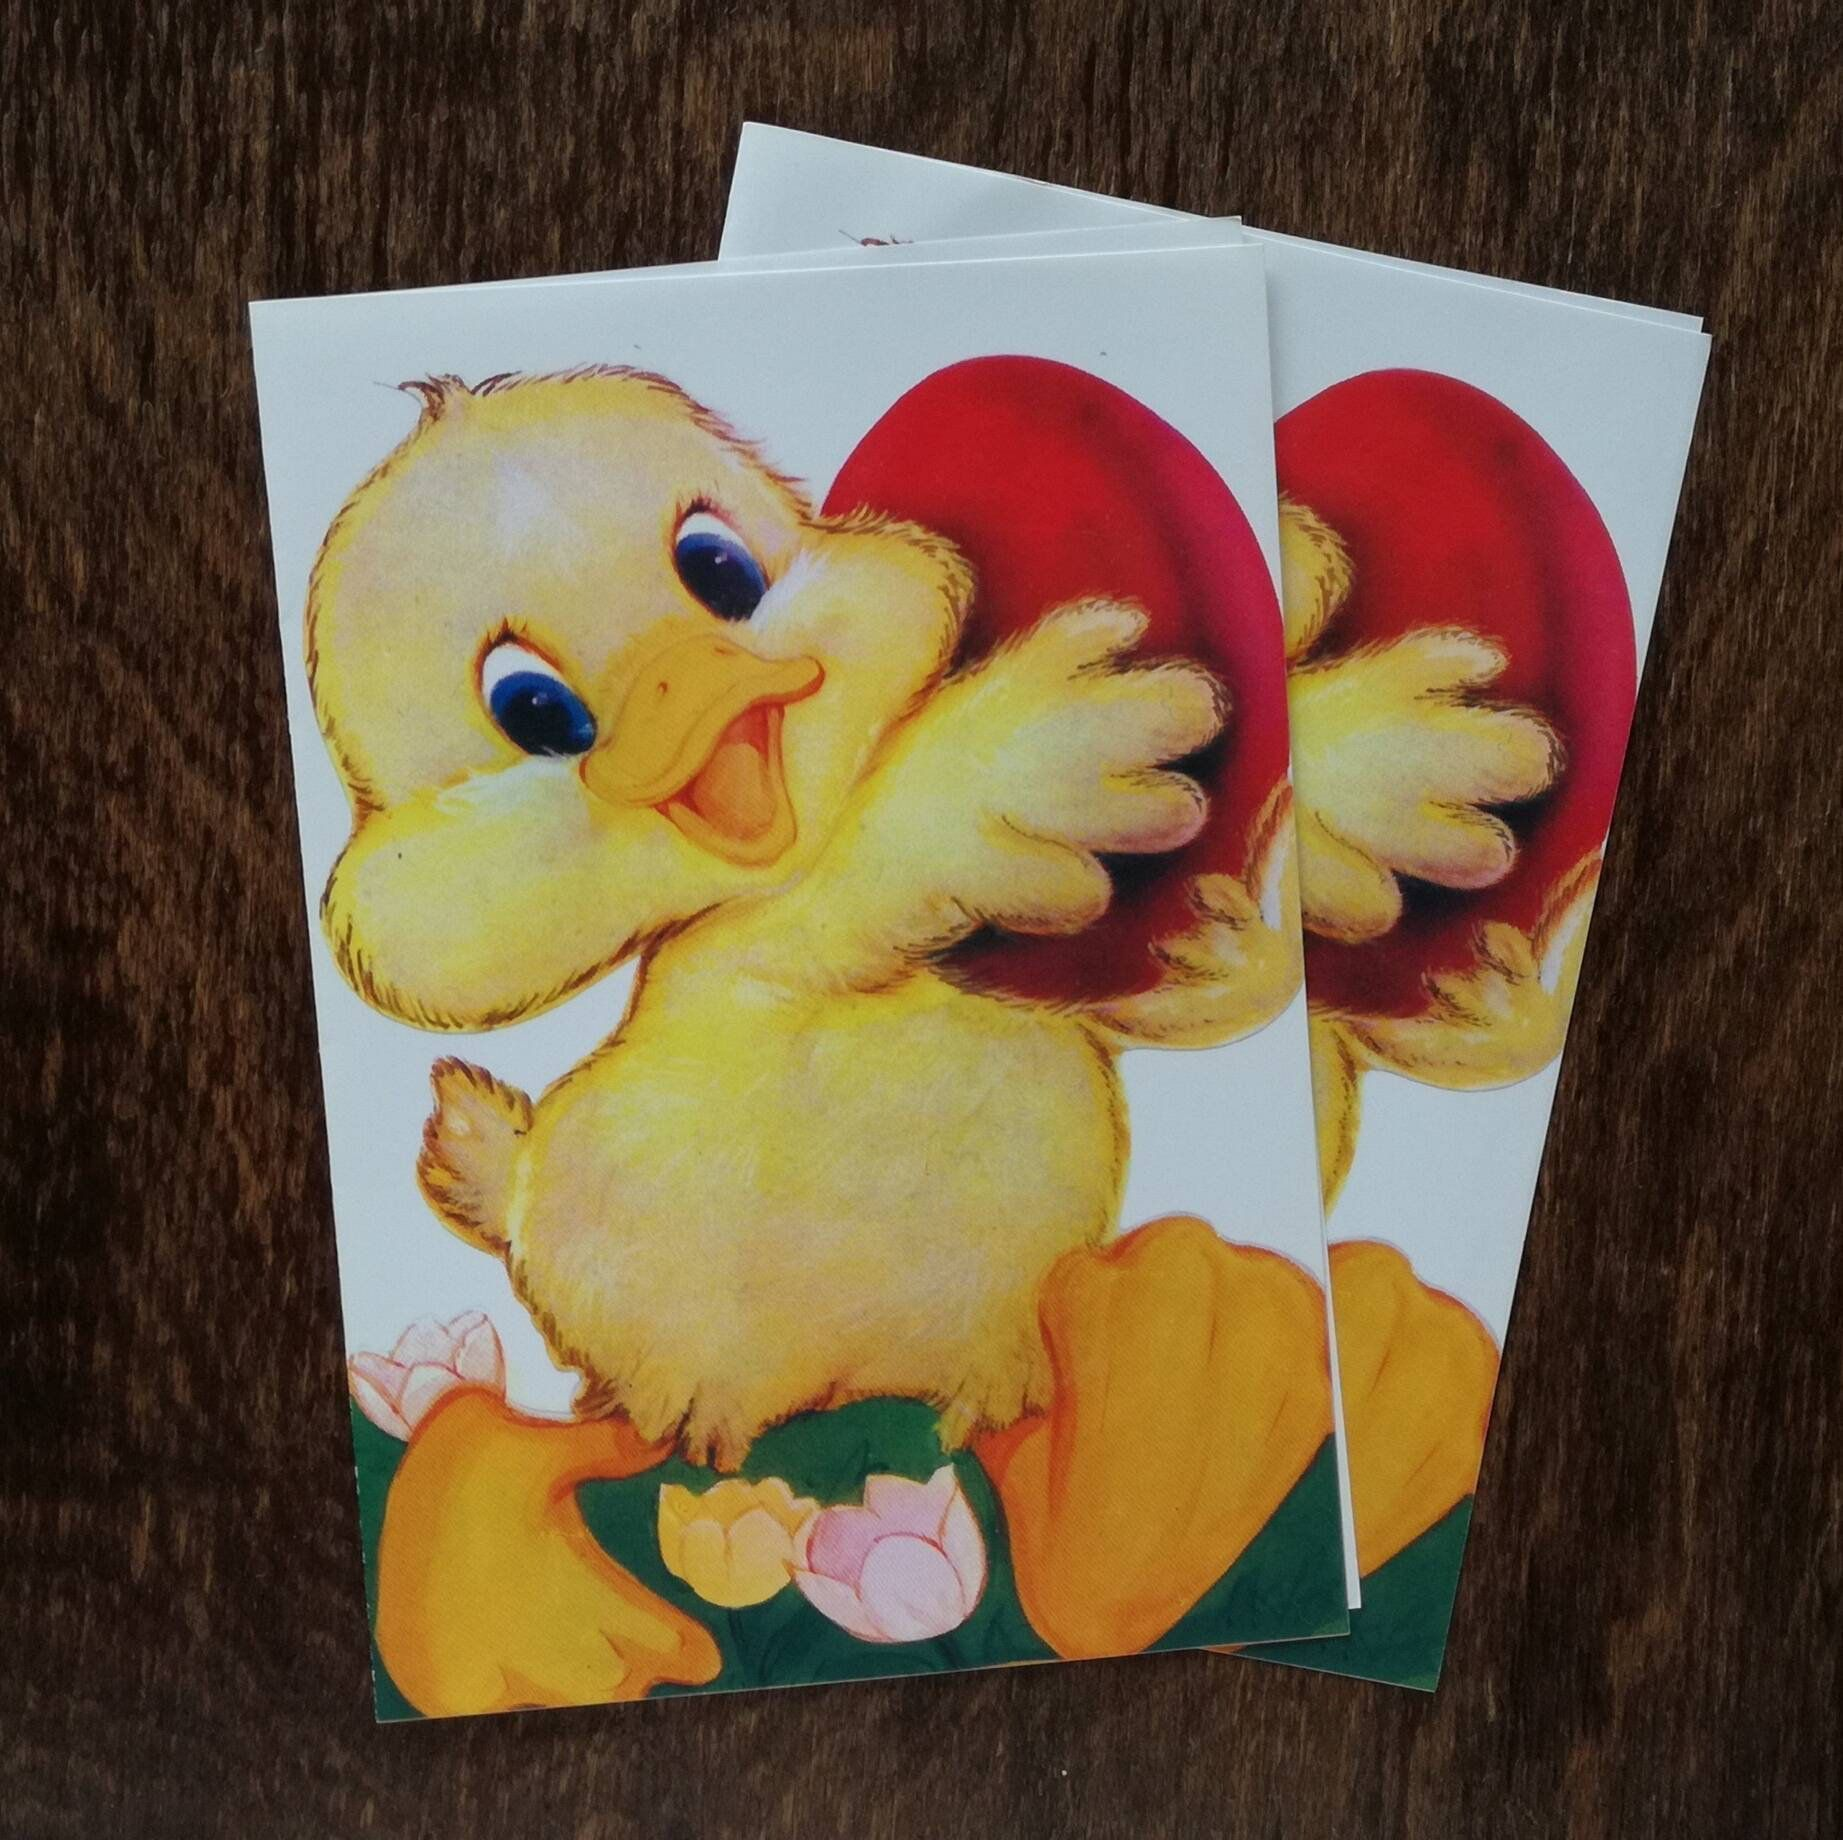 Vintage Easter Card Blank Retro Color Print Old Design Paper Greeting Chick And Egg Smiling Chicken Red Spring Papergoods